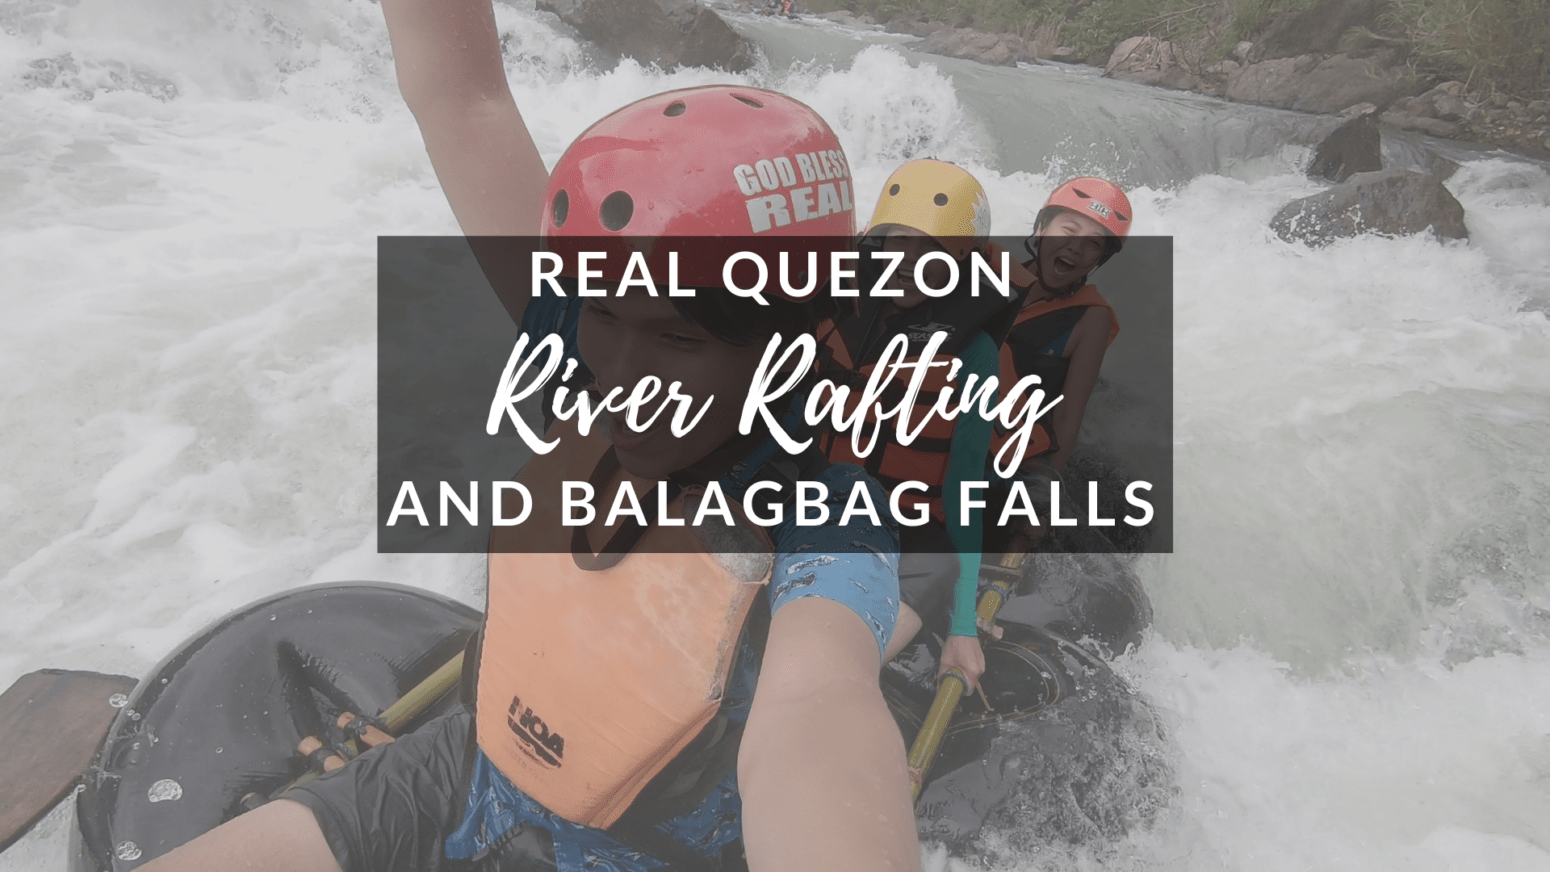 Real Quezon River Rafting Balagbag Falls